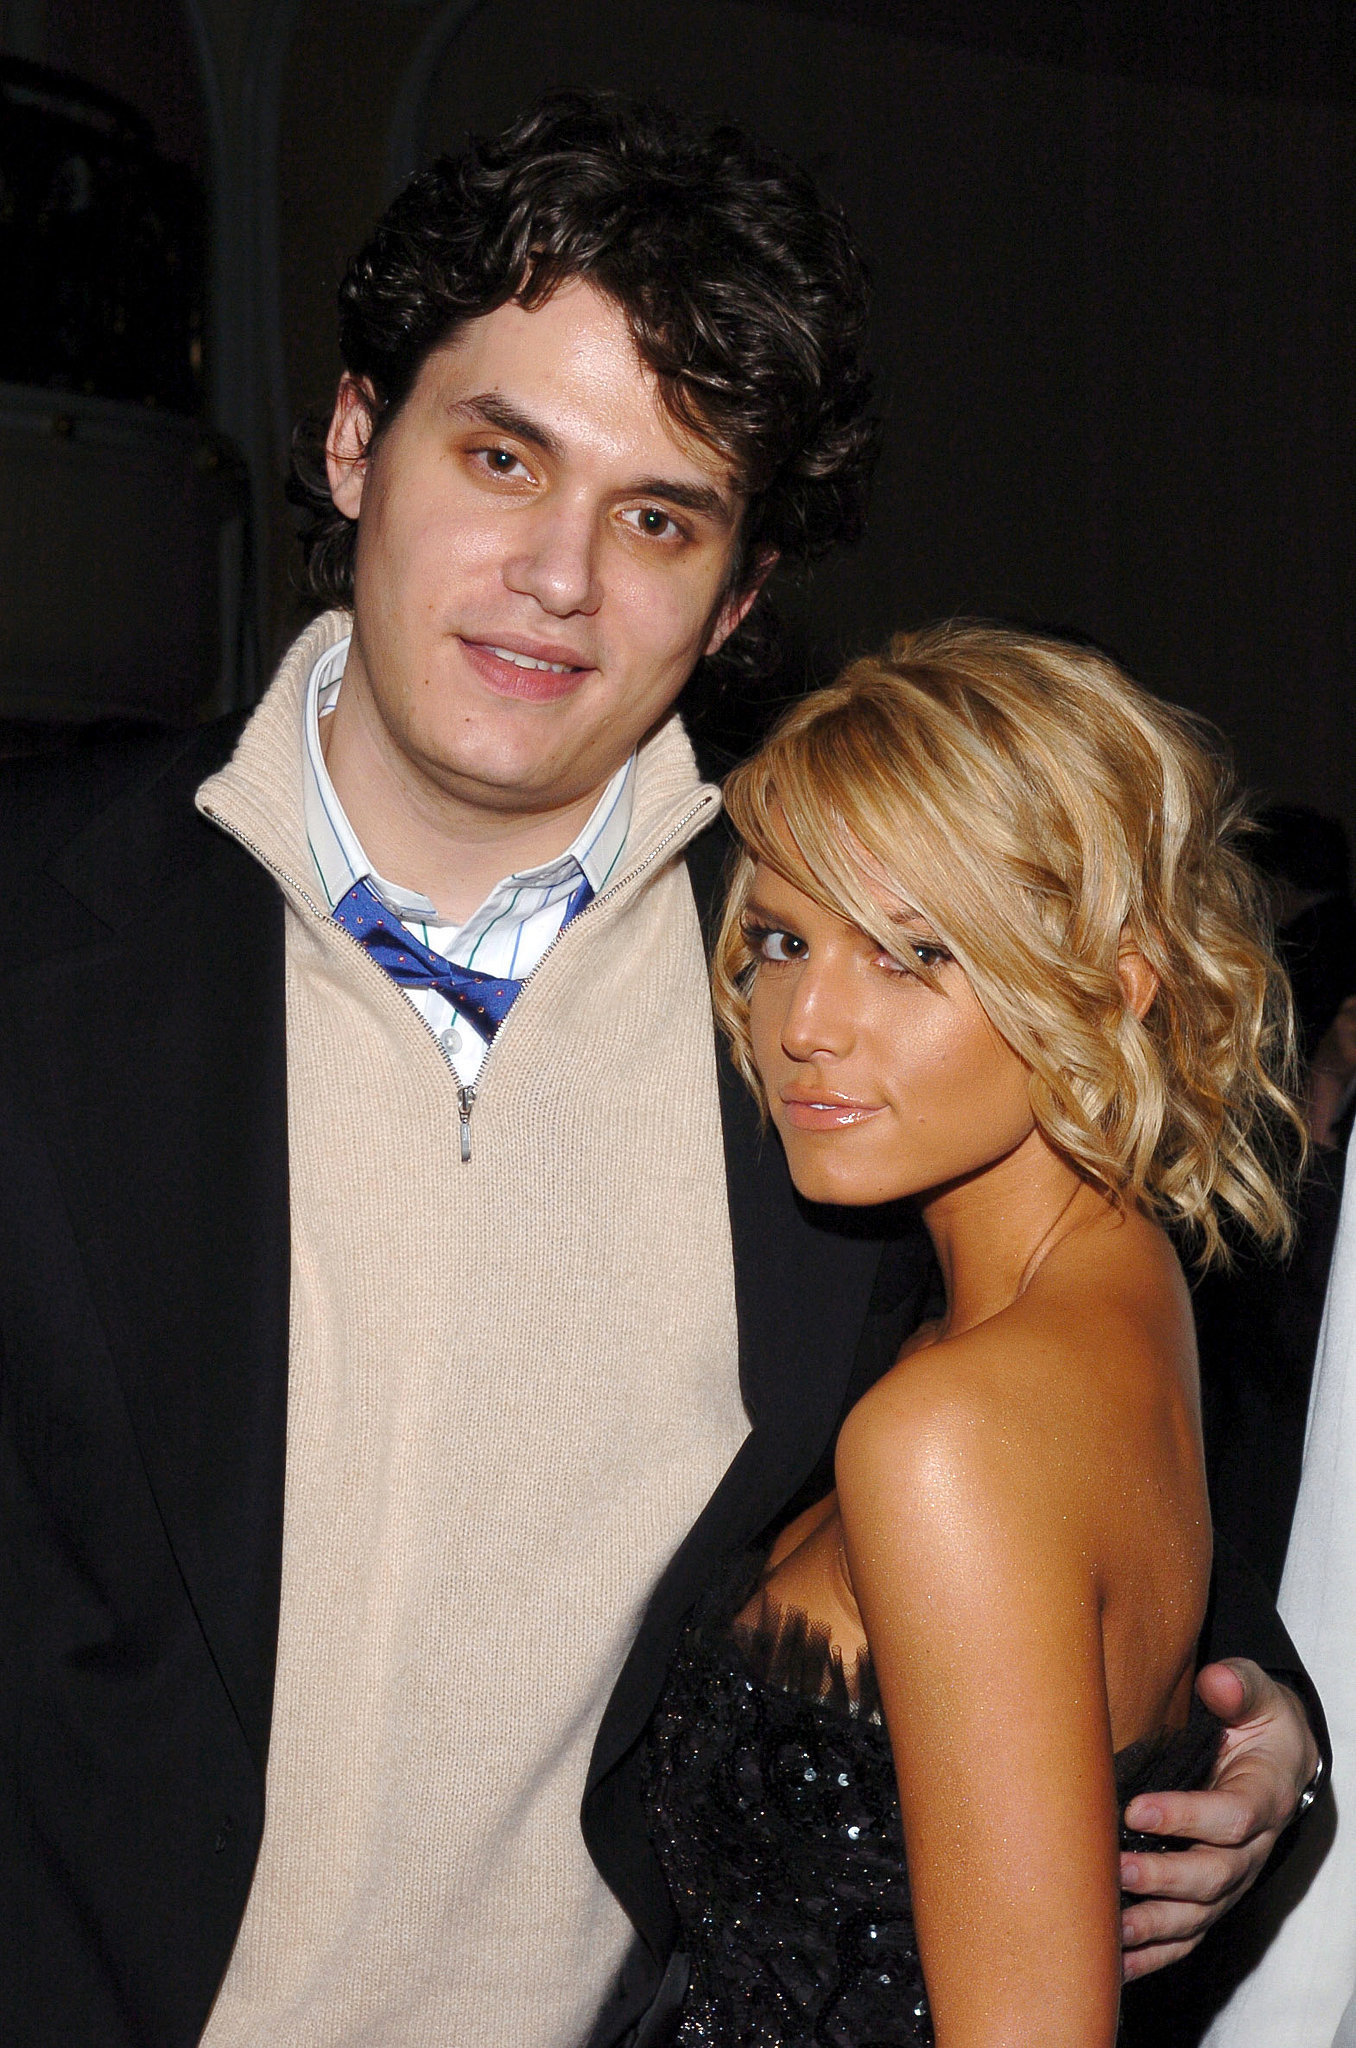 John Mayer posed with a very tan Jessica Simpson in 2005. One year later, they started dating.